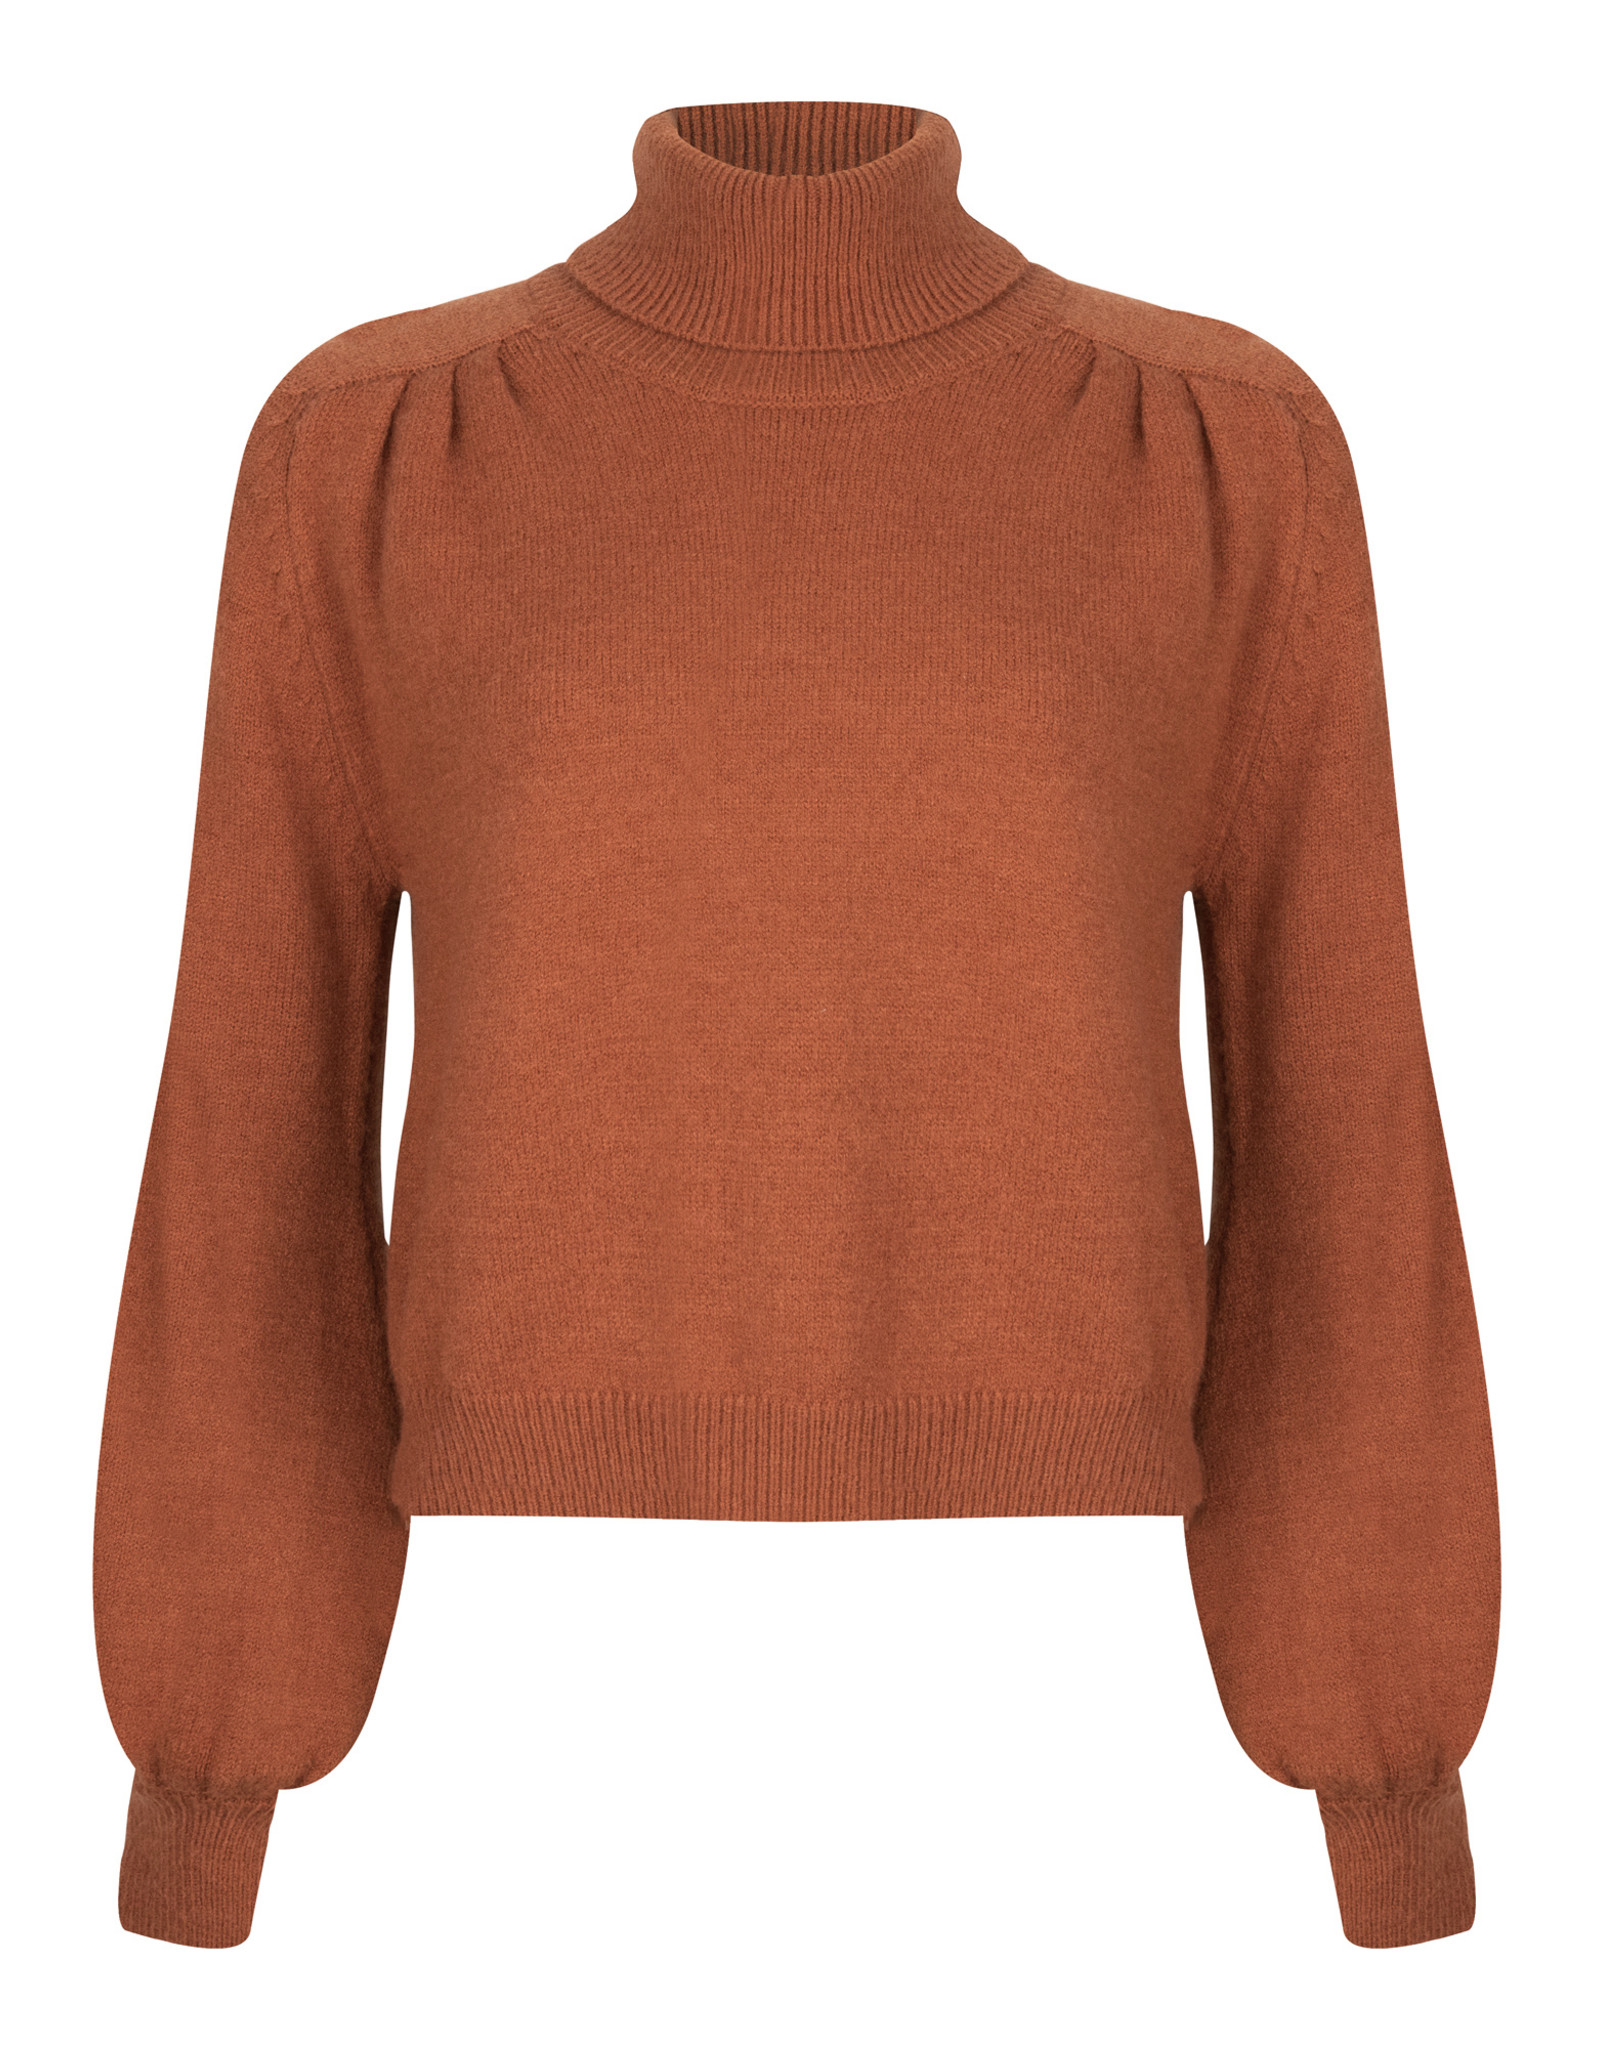 Ydence Sweater knitted - Pascalle - bruin